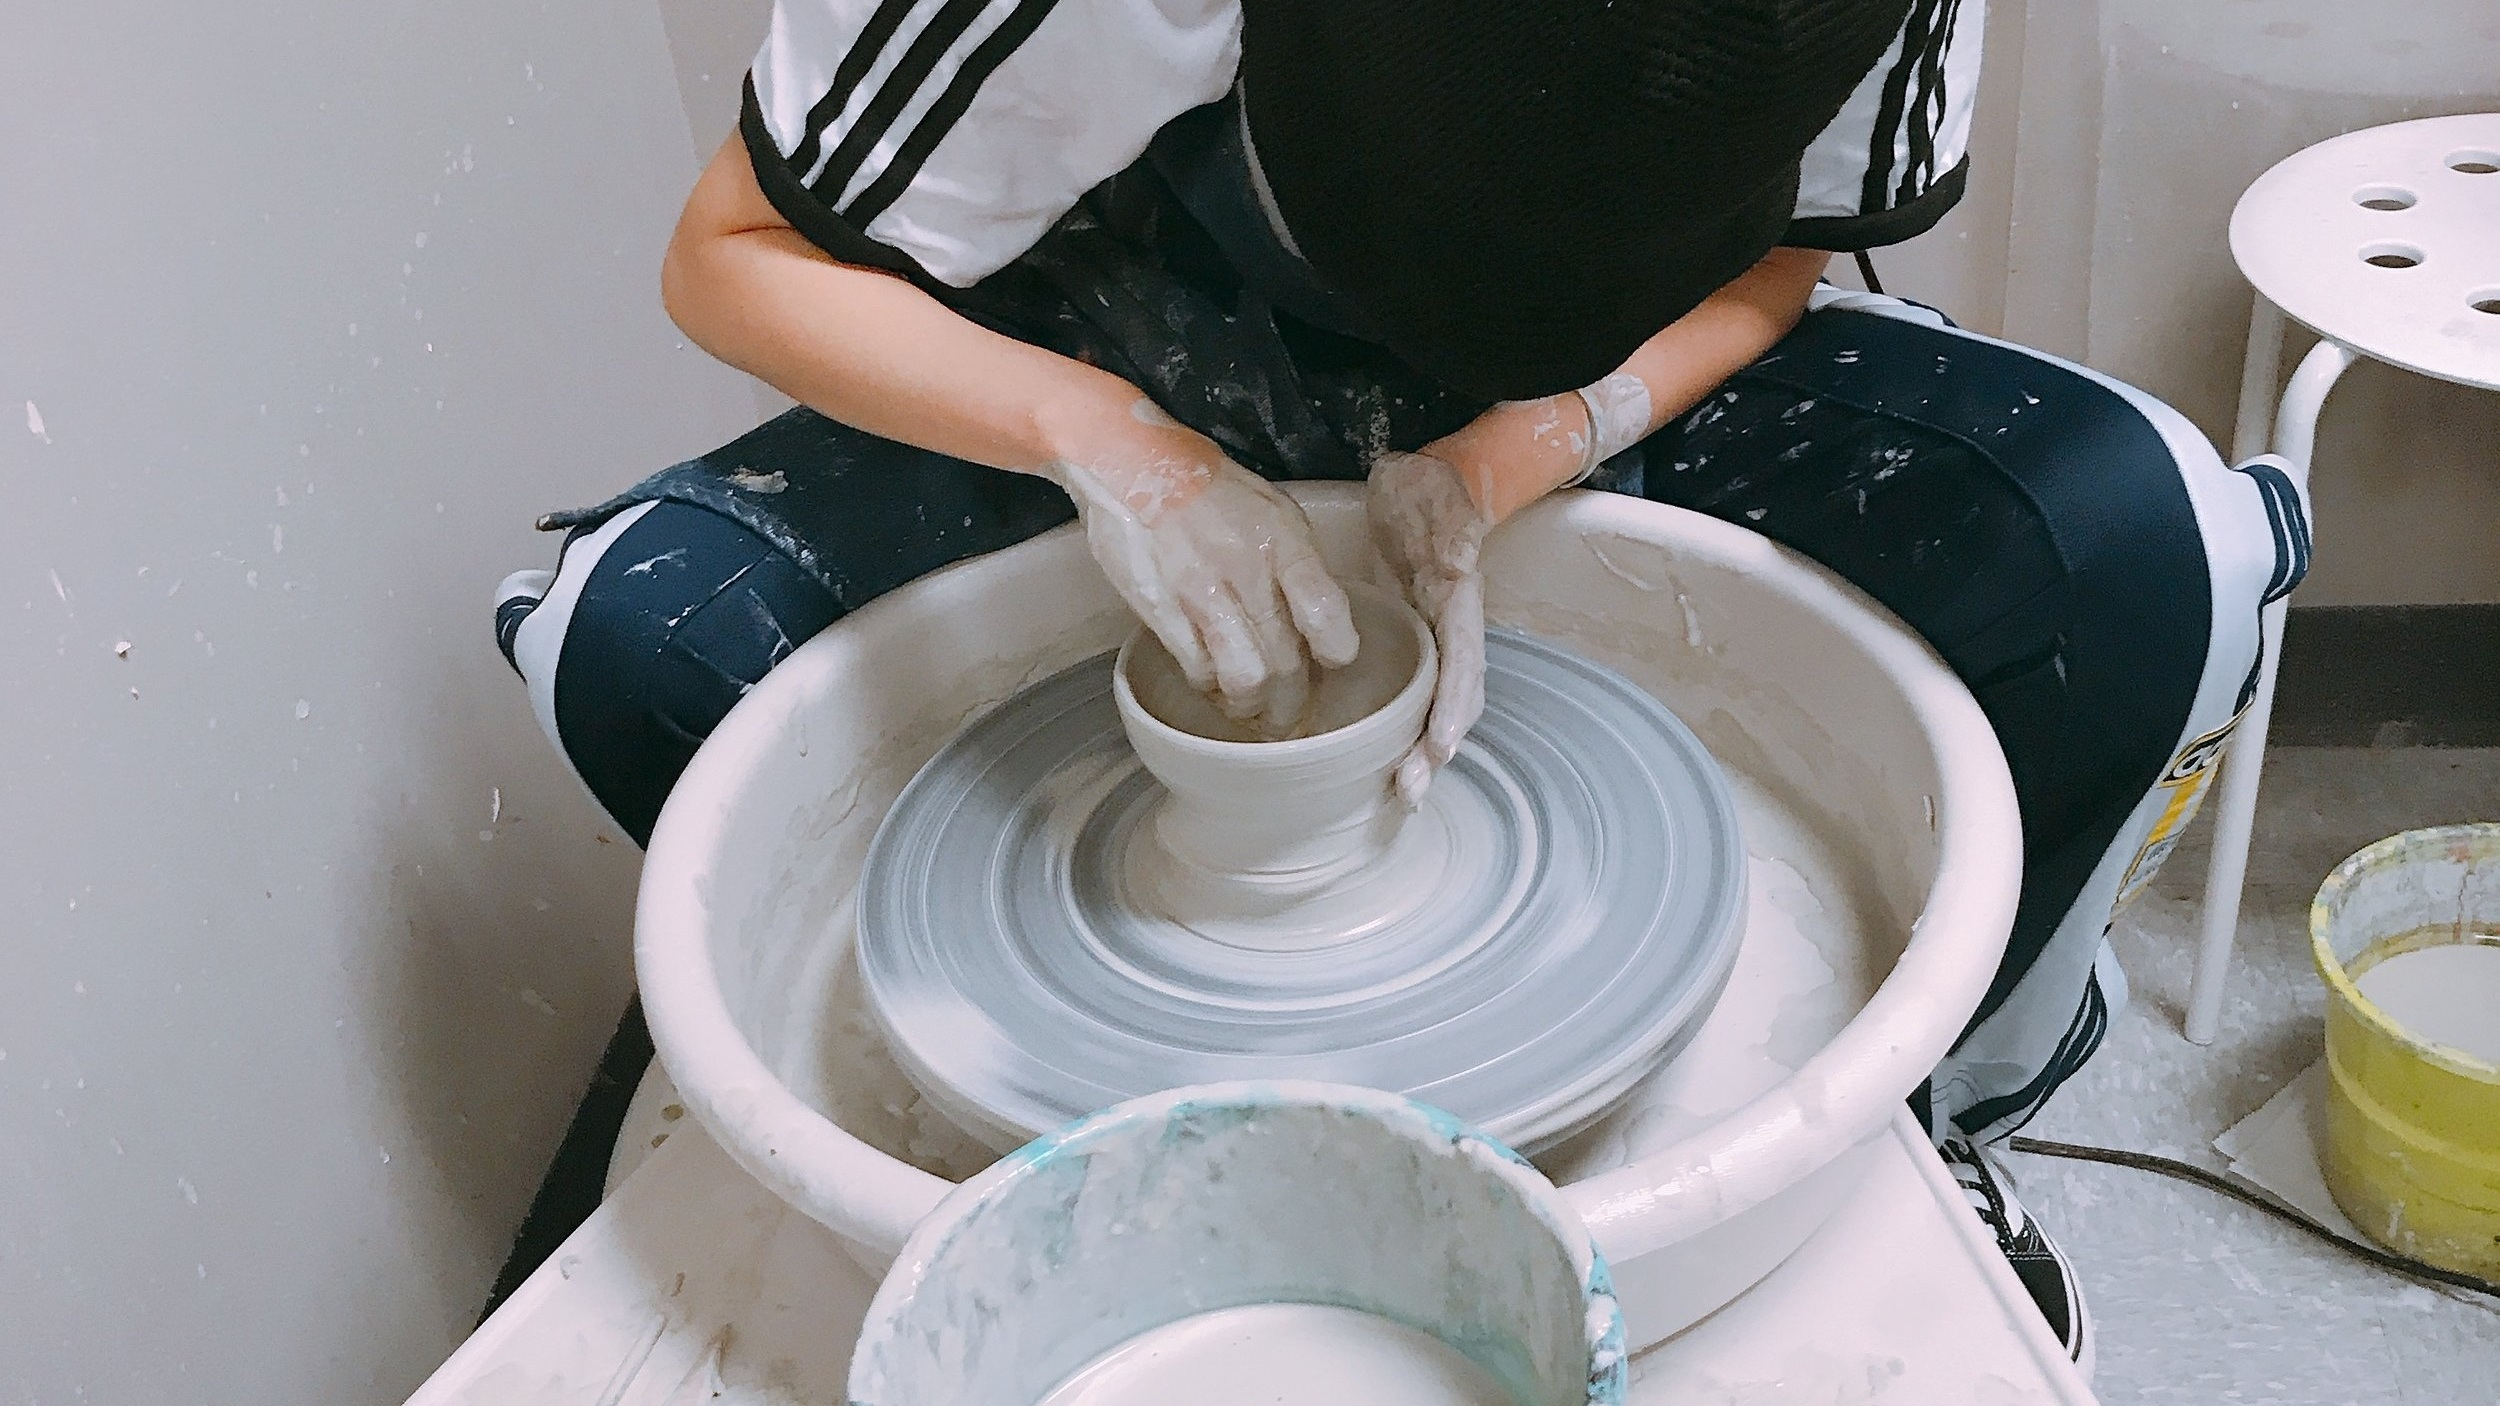 CERAMICS CLASS - Students will learn how to handmake ceramics by pinching, rolling, and shaping the clay.